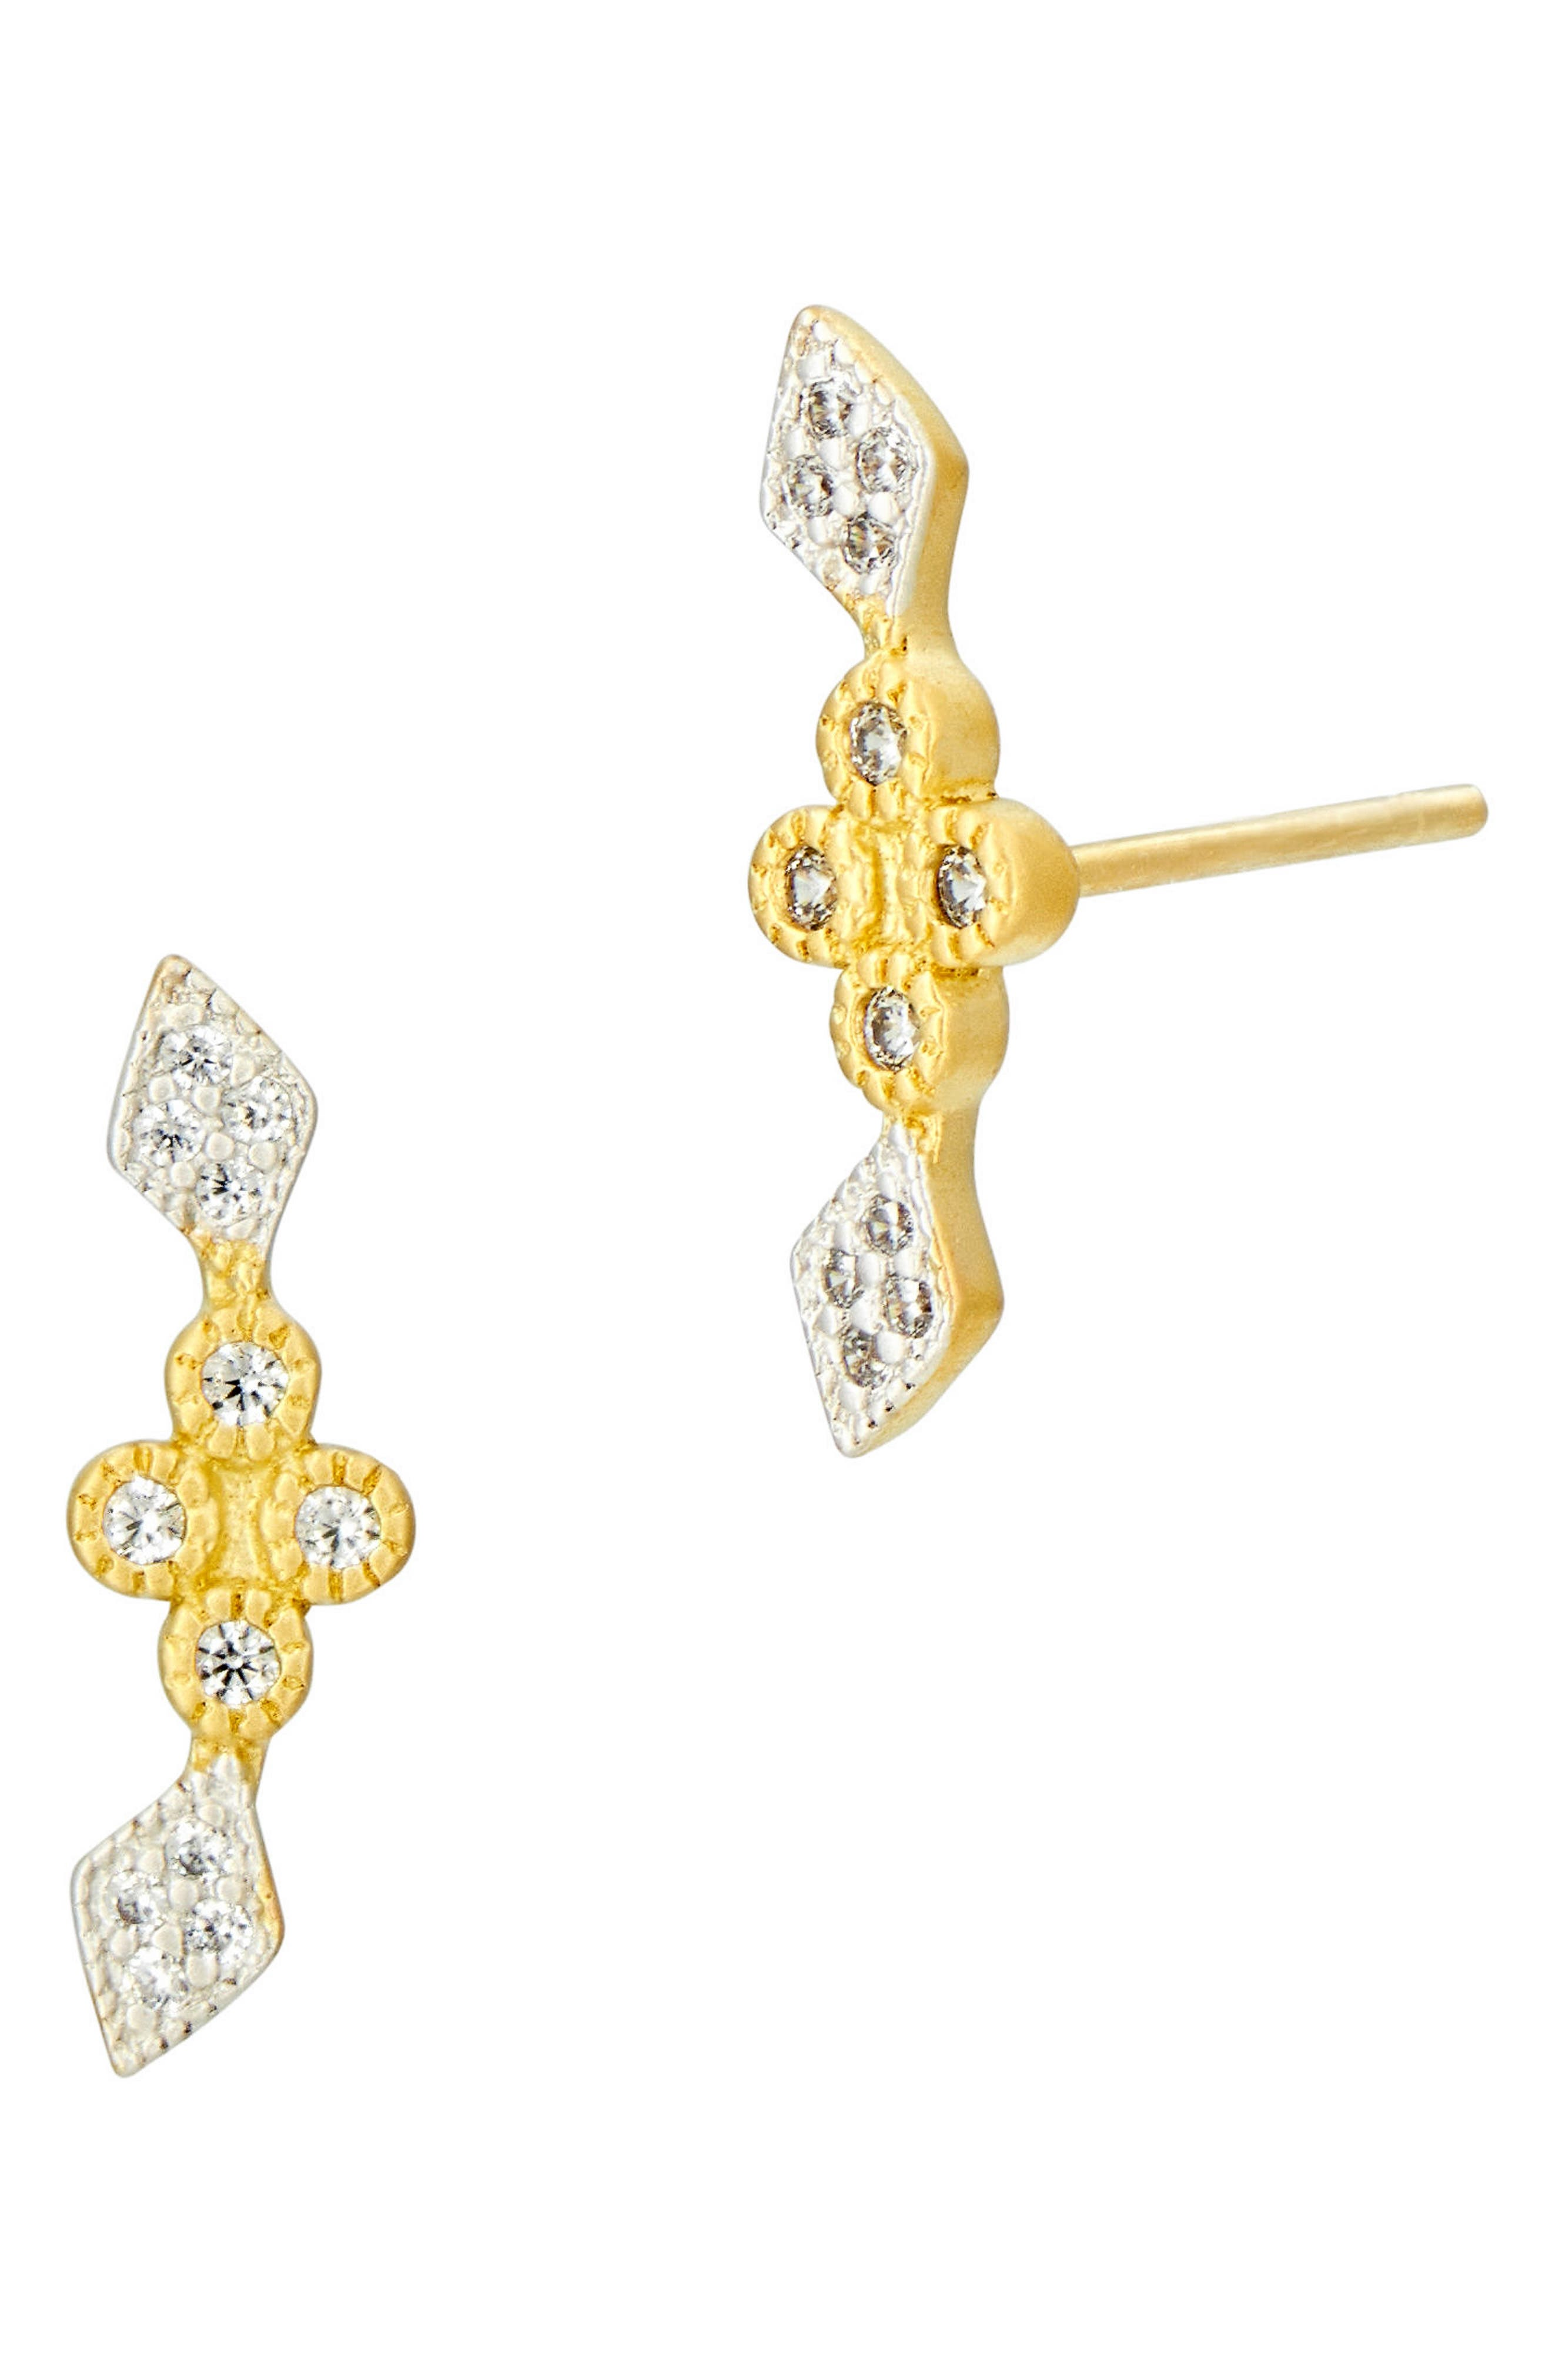 Visionary Fusion Stud Earrings,                         Main,                         color, Gold/ Silver